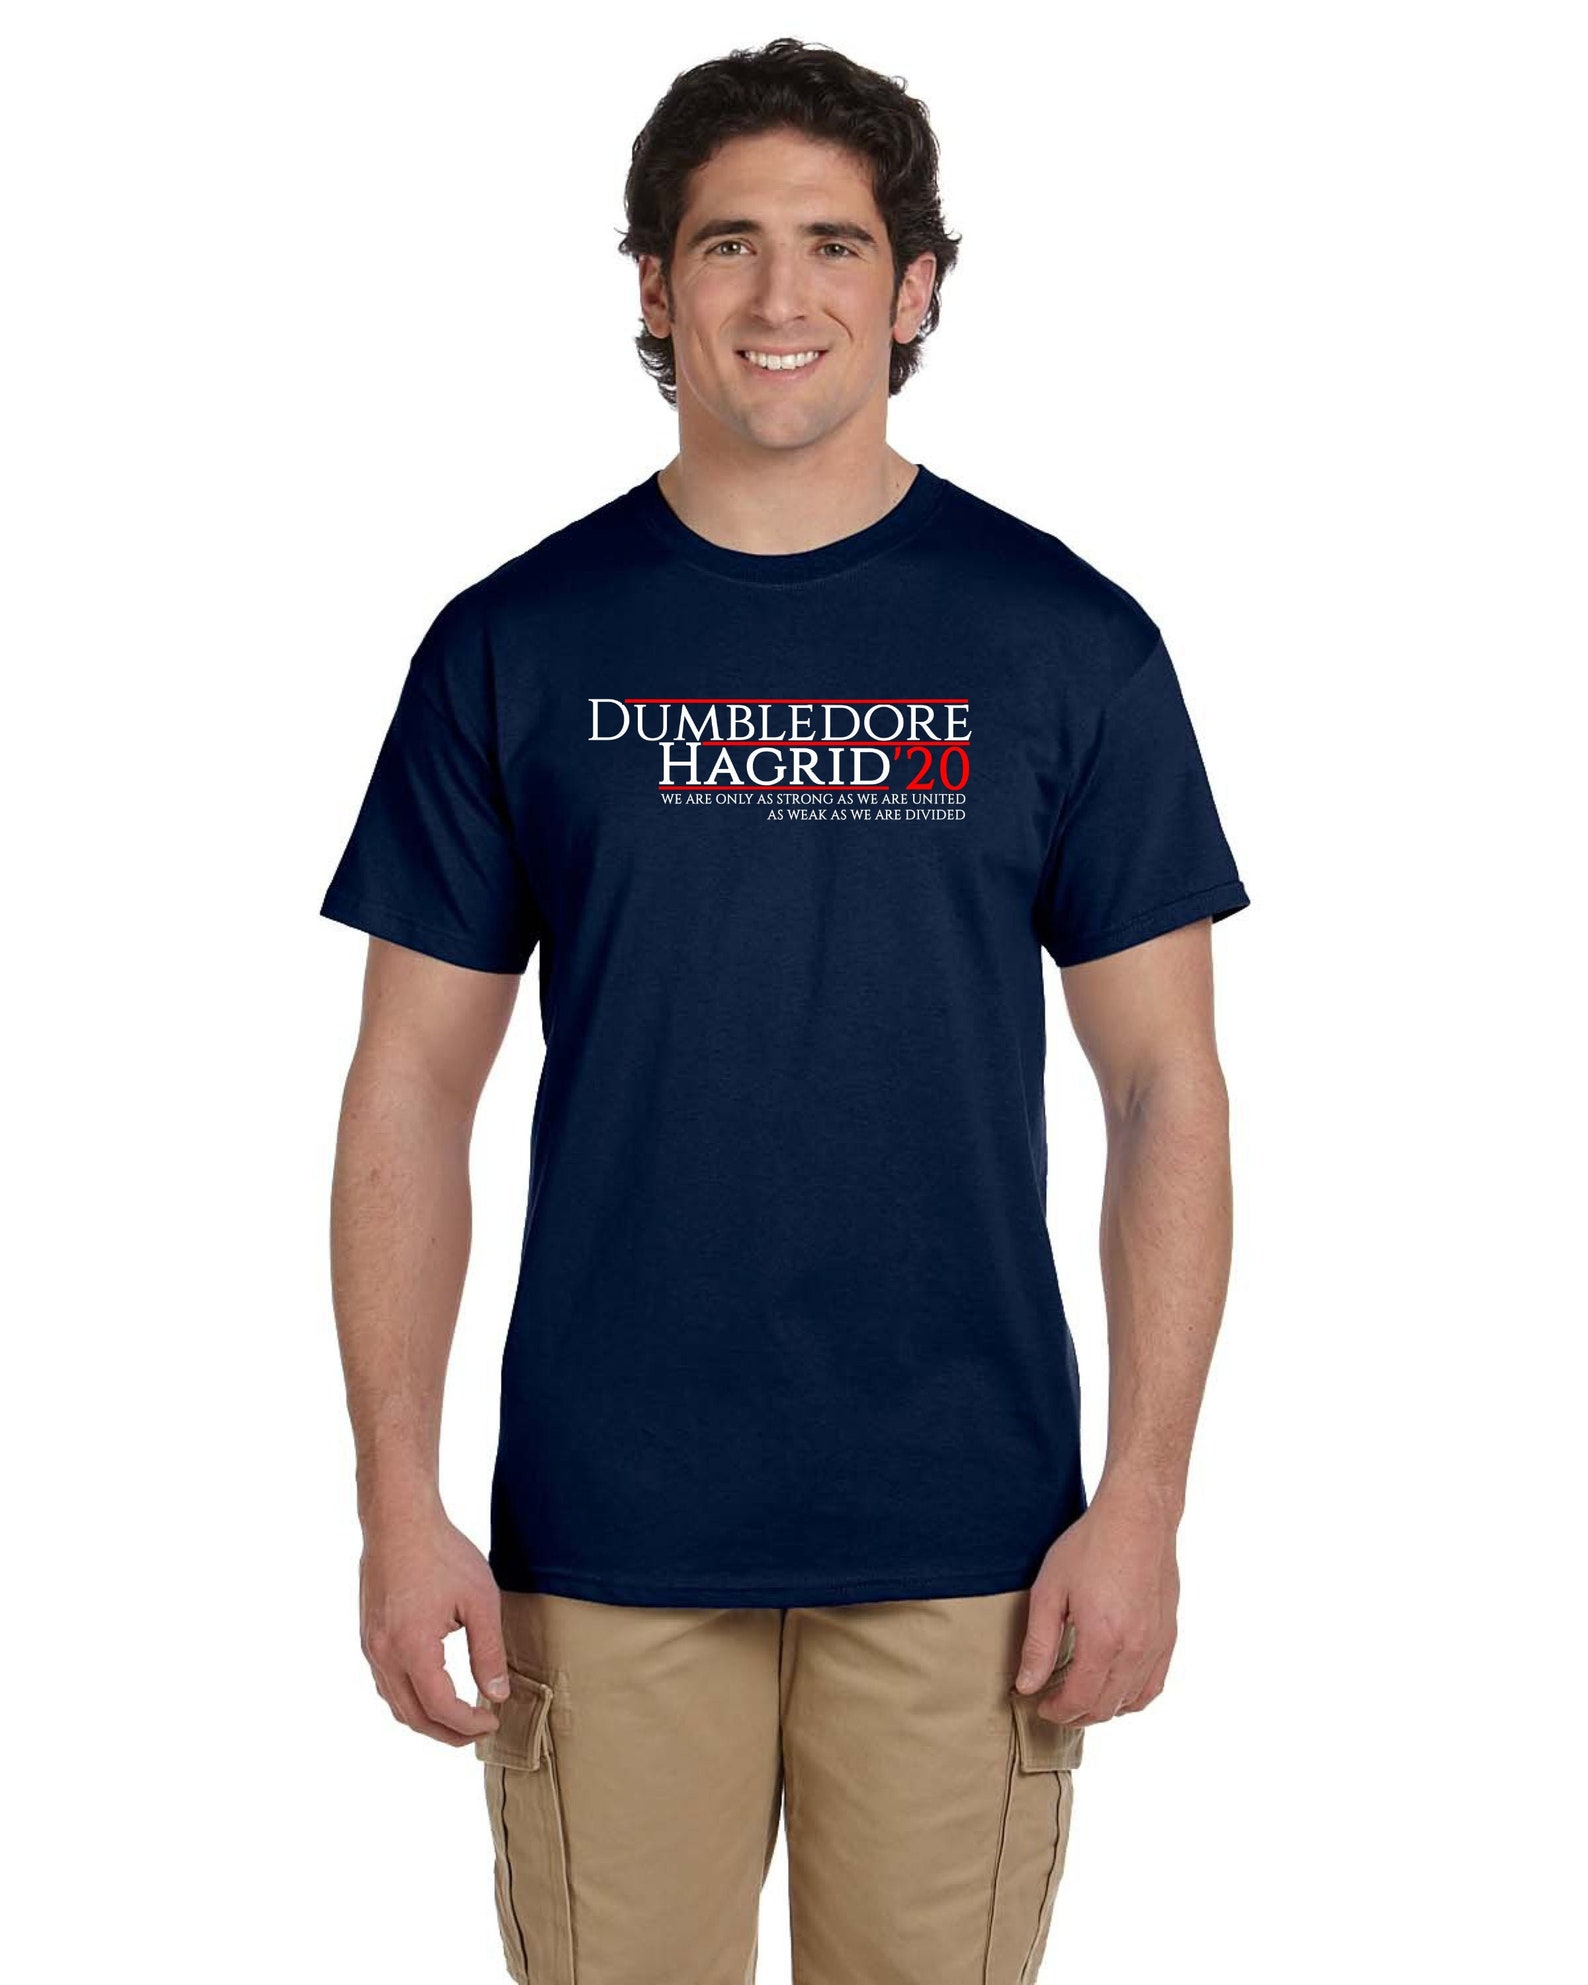 Dumbledore and Hagrid election t-shirt for 2020